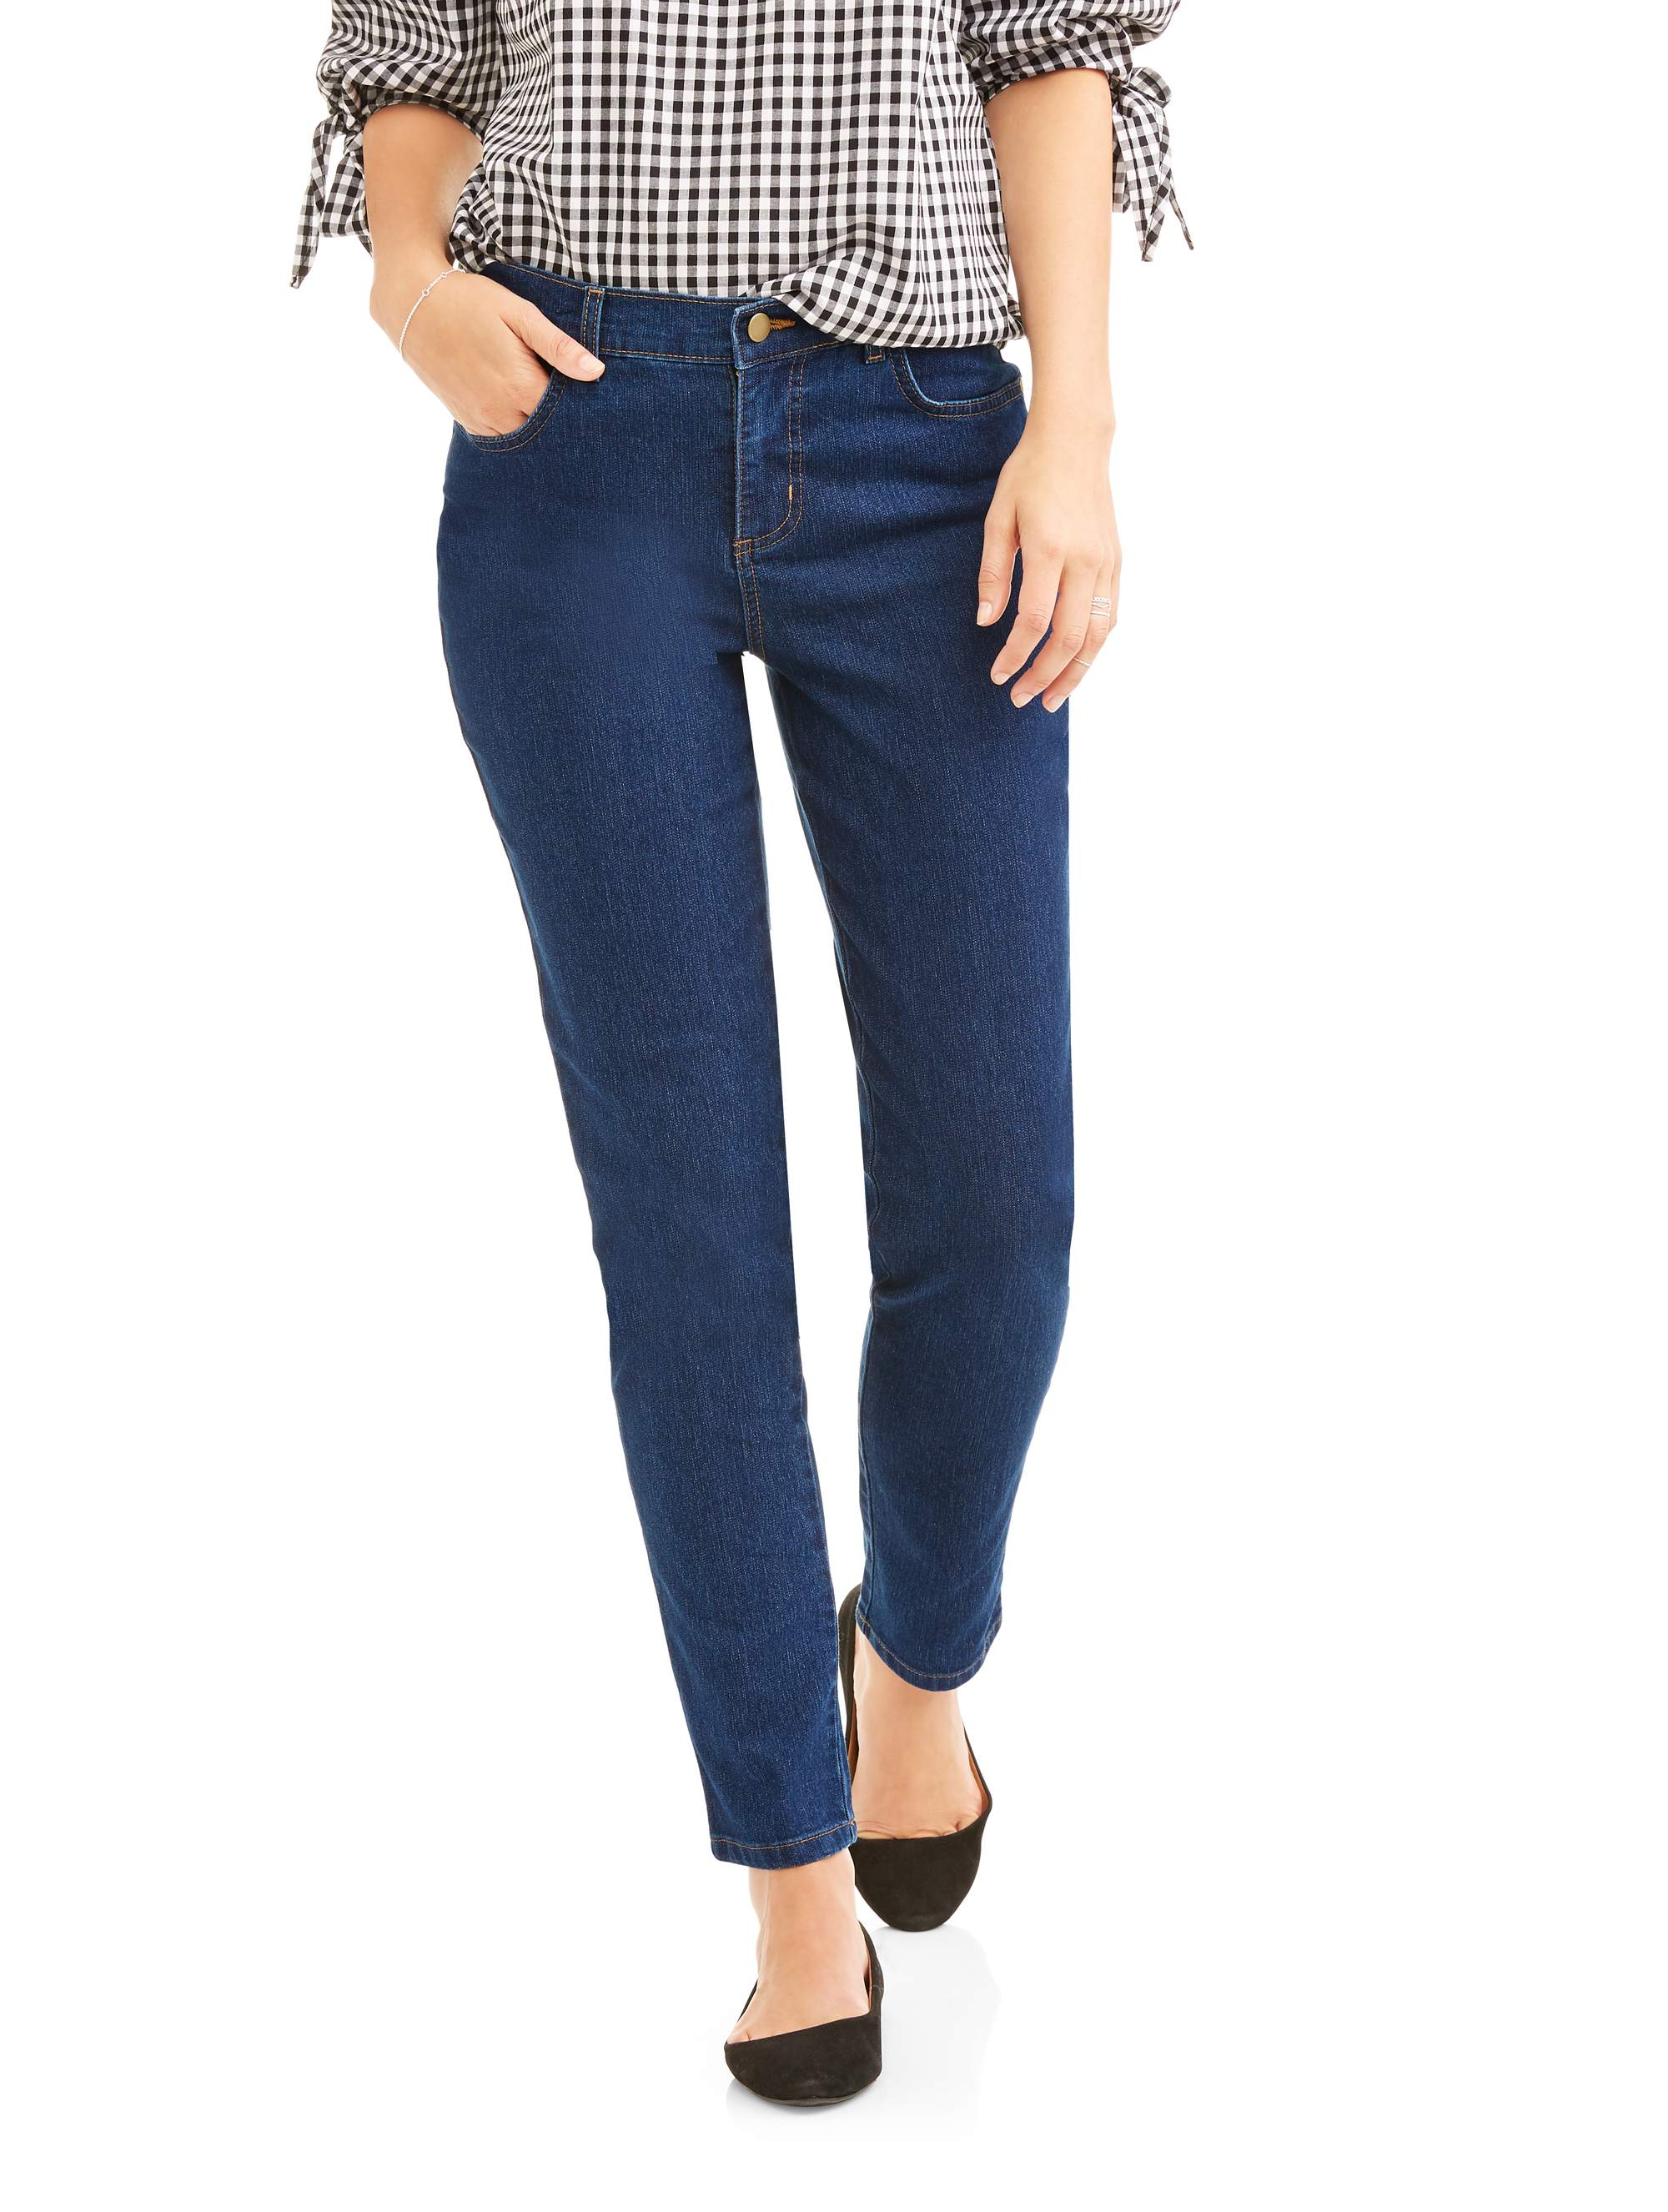 RealSize Womens Stretch Denim 5-Pocket Jeans With Back Elastic